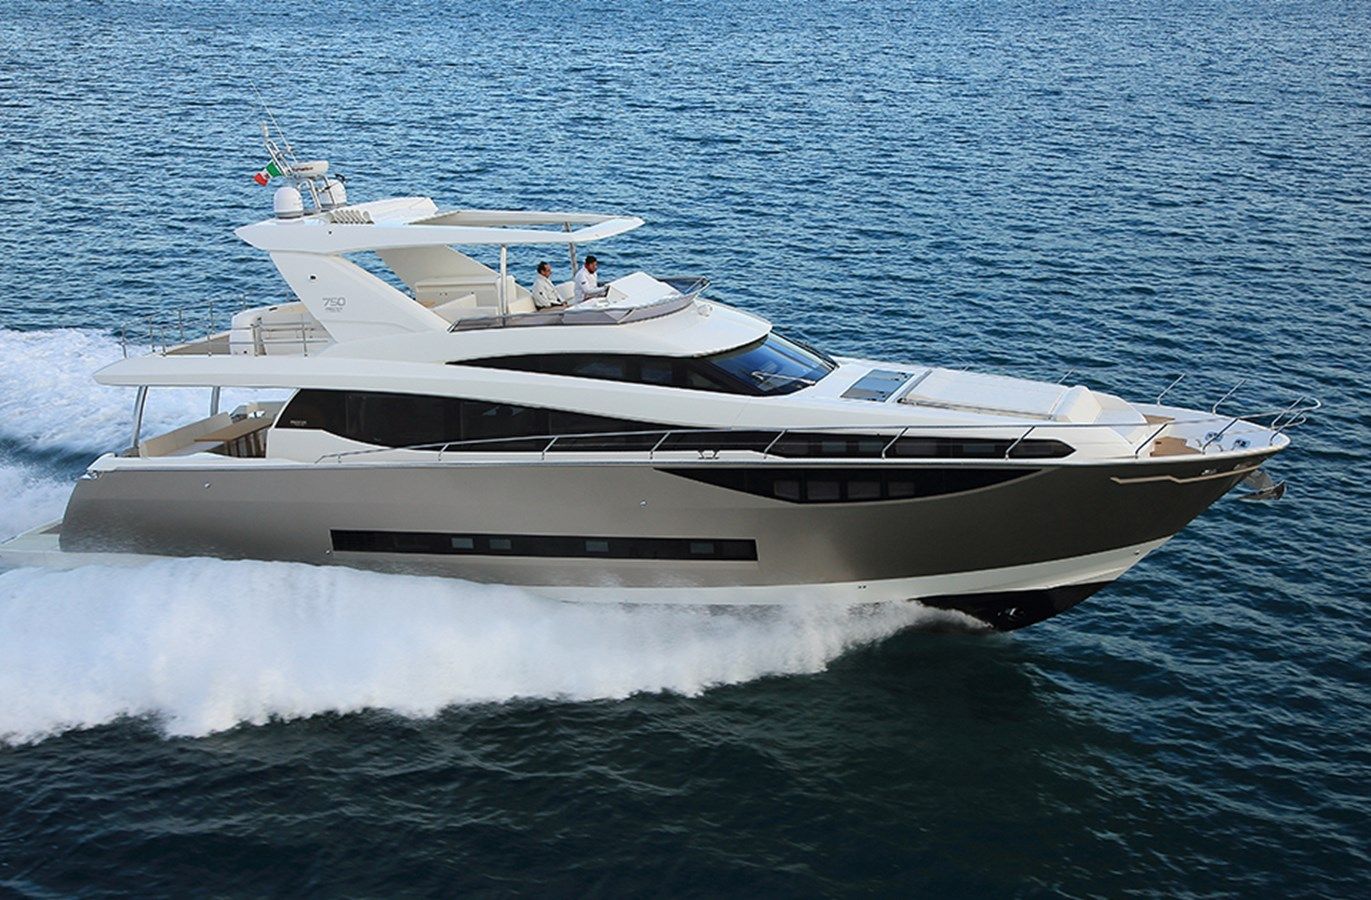 New Prestige 750 Motor Yacht Yachts For Sale